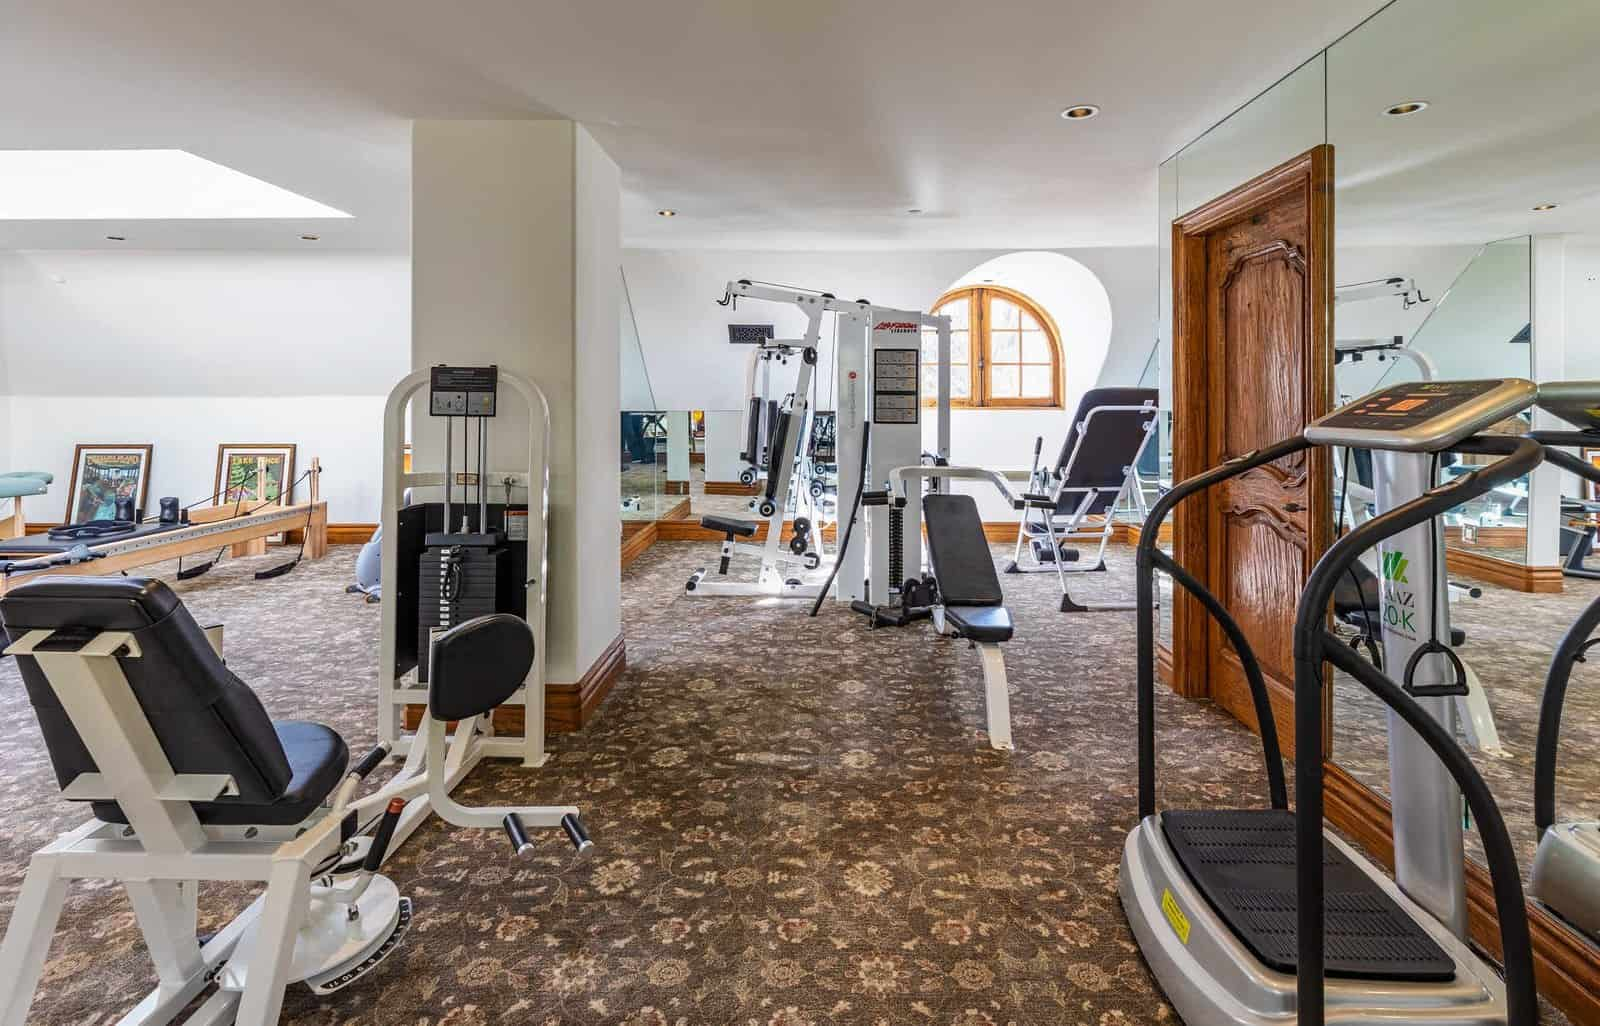 The home also offers a large home gym with lots of great fitness equipment. The room also features carpet flooring. Images courtesy of Toptenrealestatedeals.com.